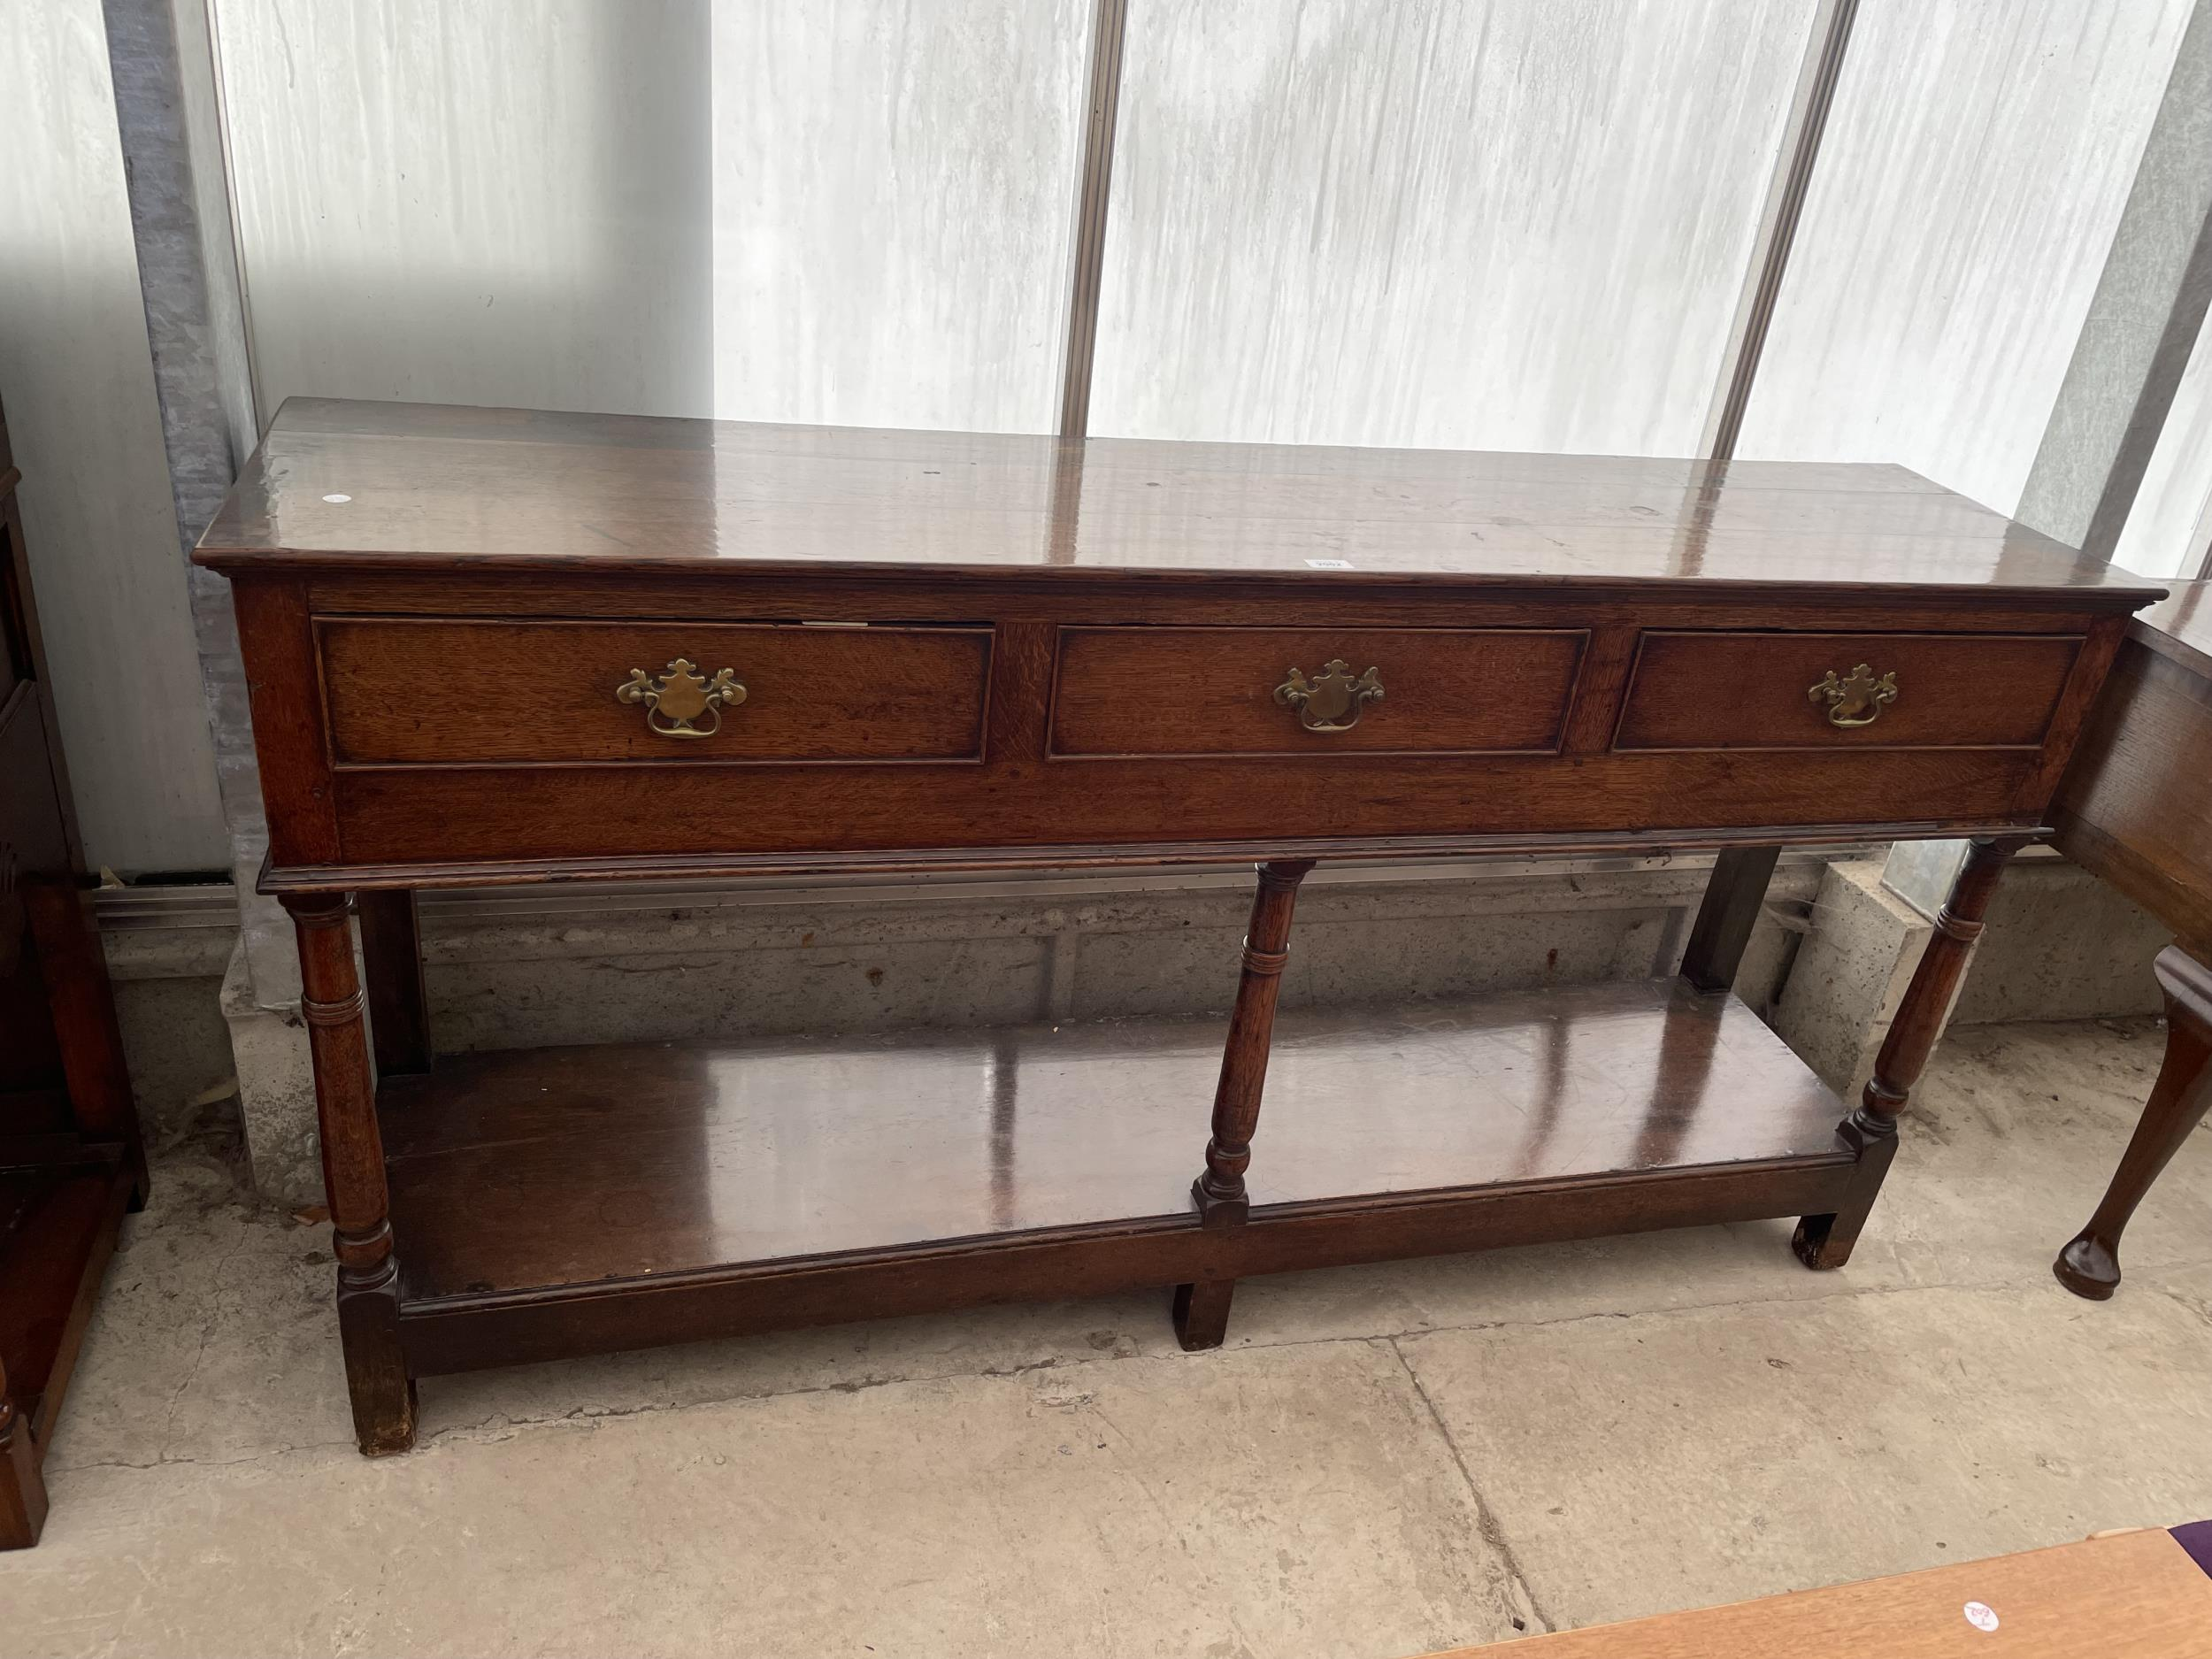 """A GEORGE III OAK DRESSER WITH THREE DRAWERS AND POT BOARD, ON TURNED LEGS, 66.5"""" WIDE"""